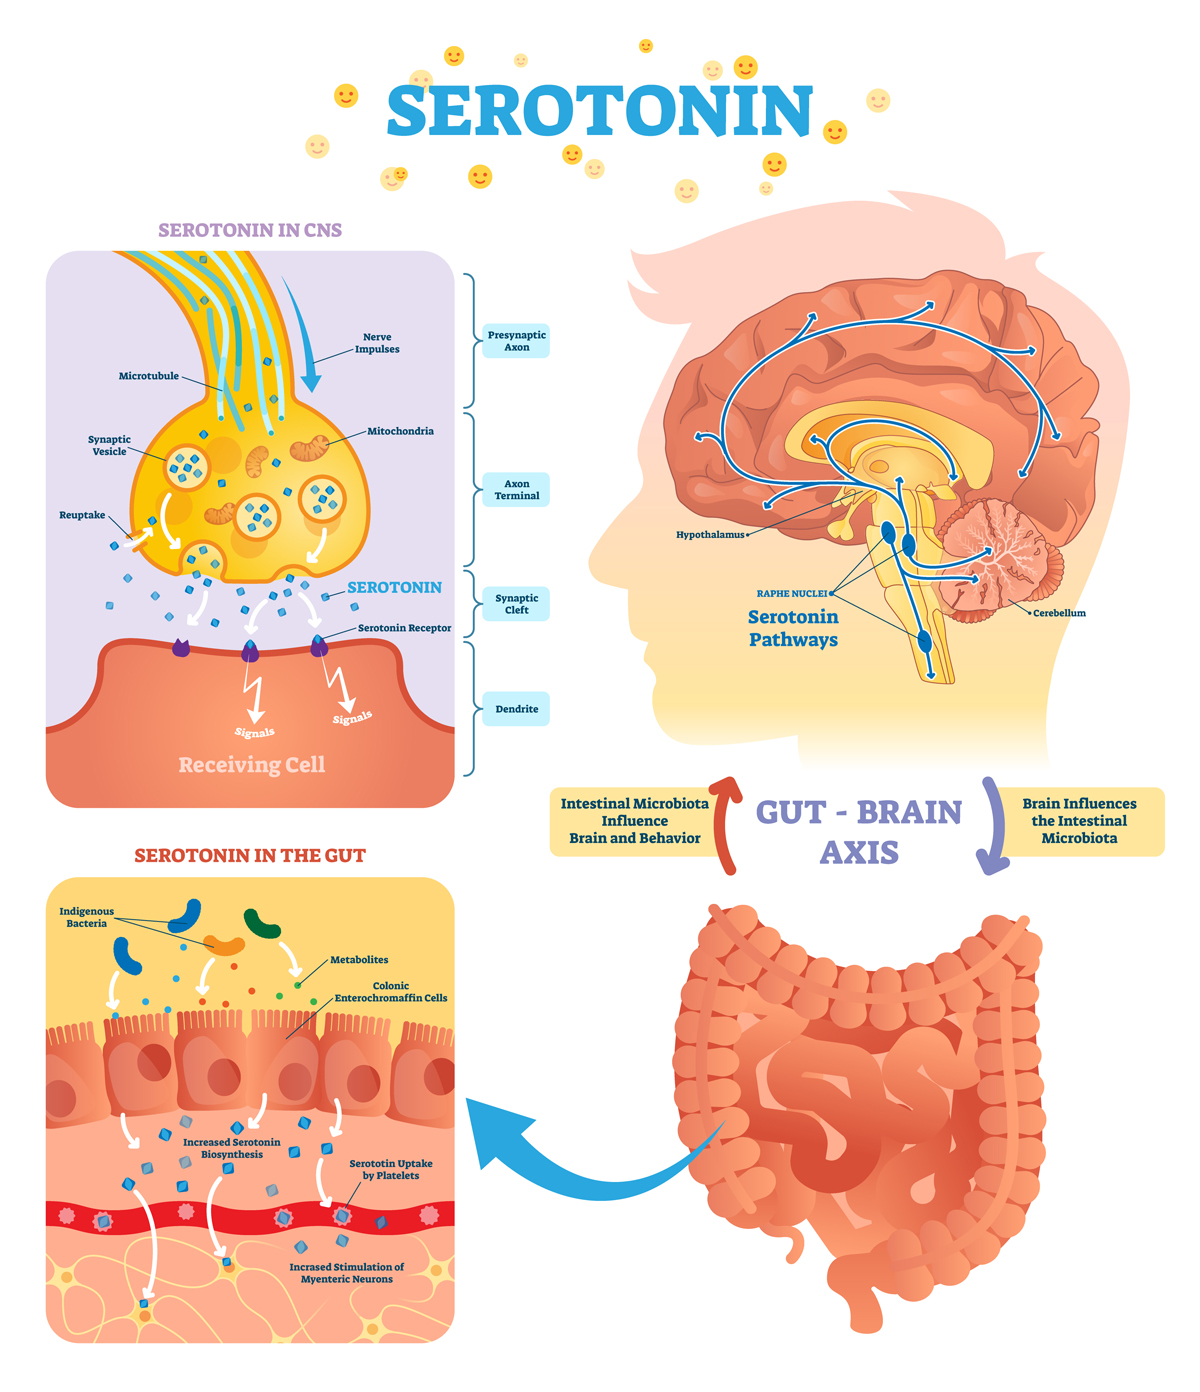 Serototin vector illustration. Labeled diagram with gut brain axis and CNS.